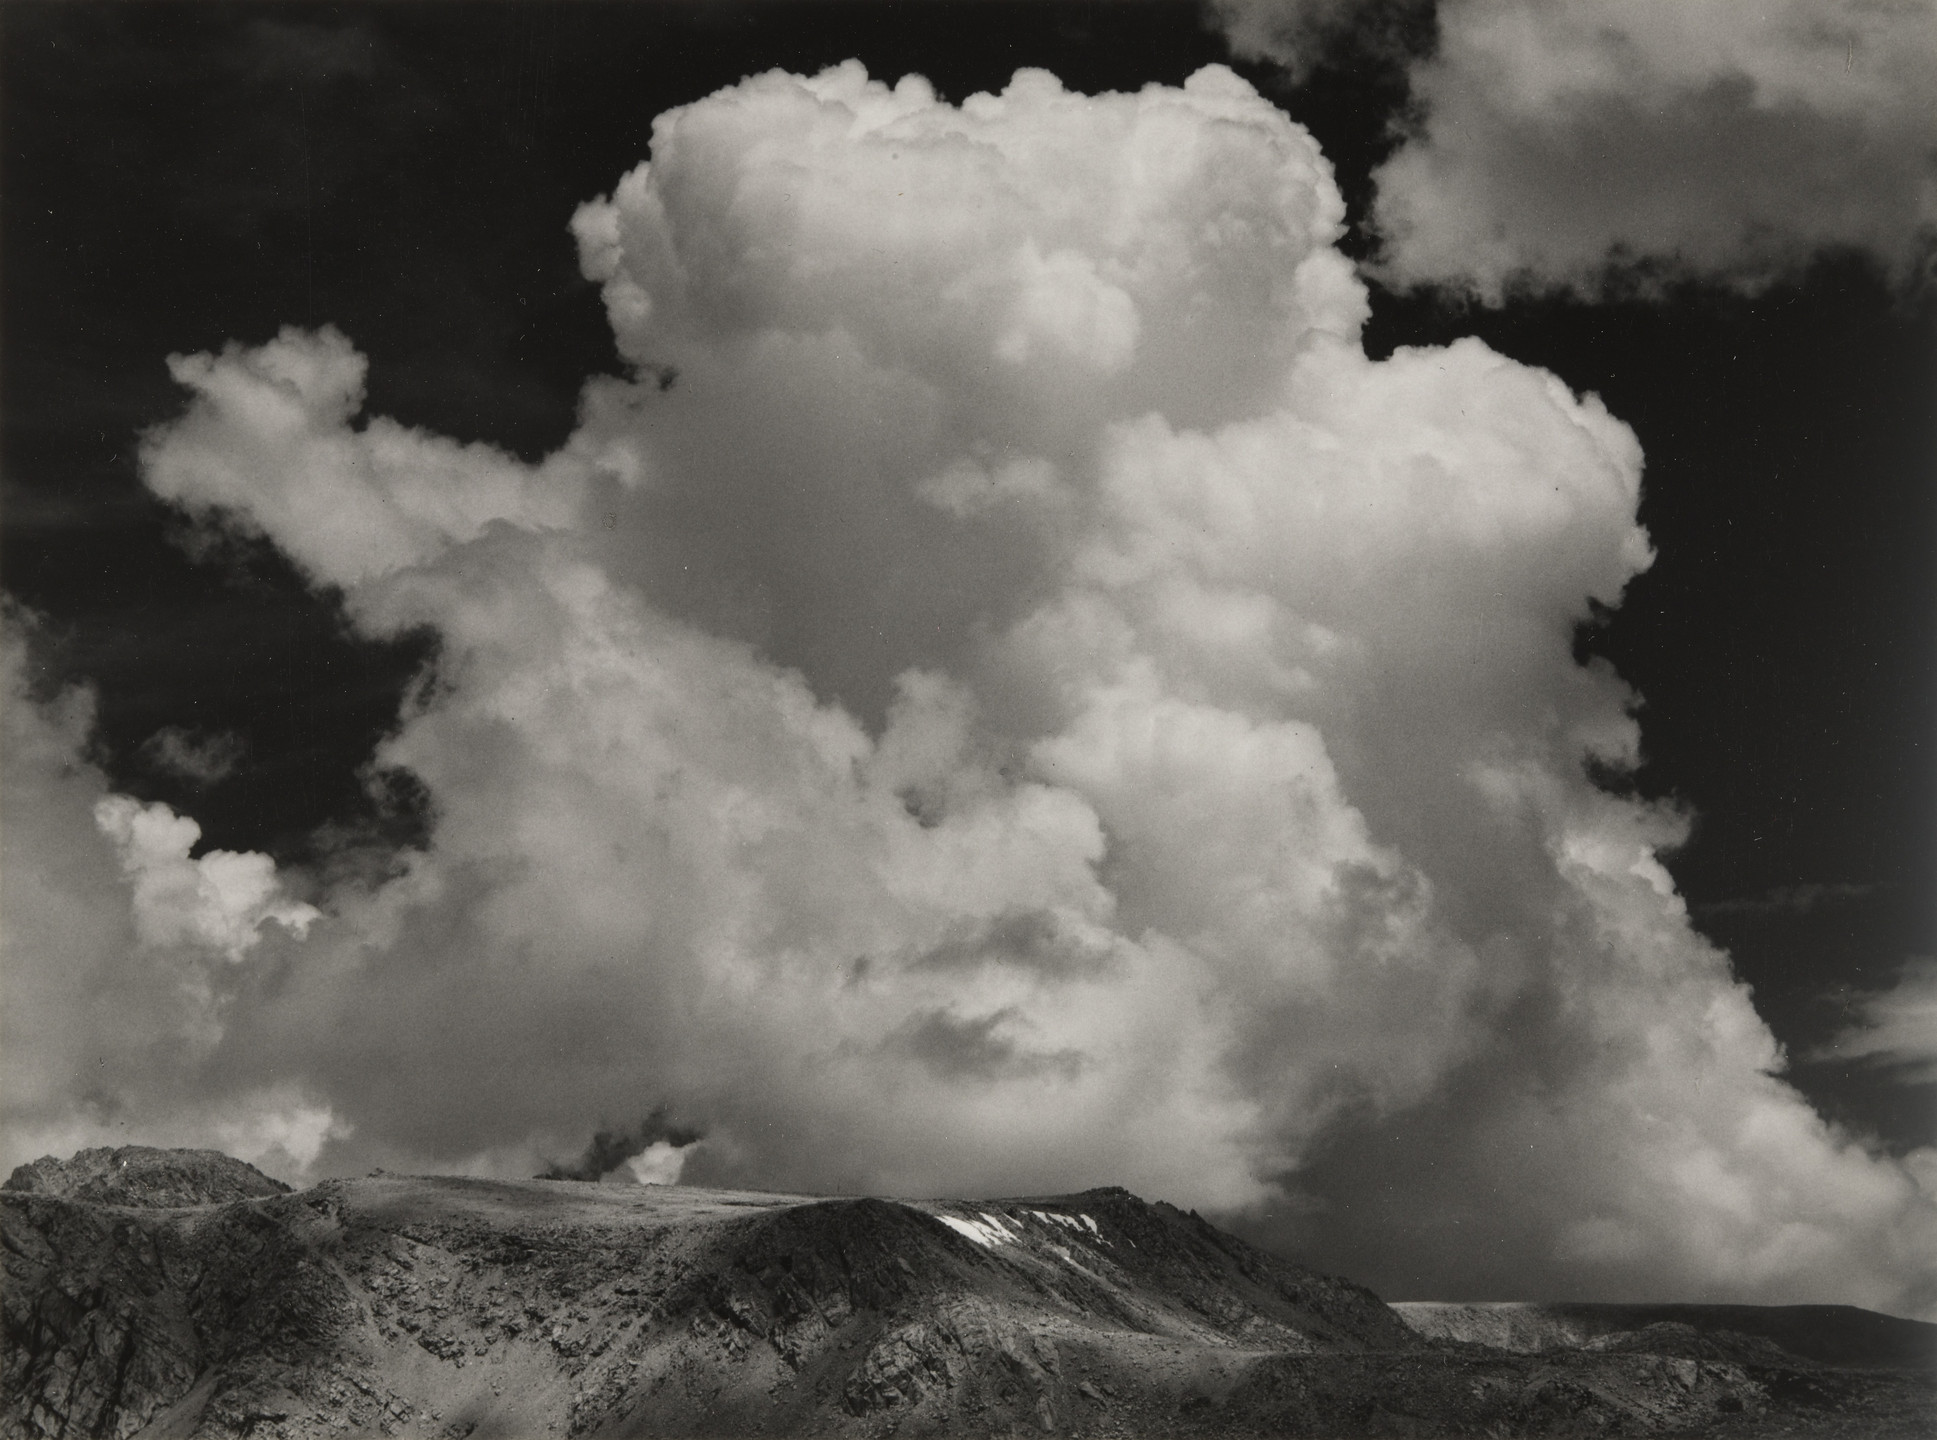 Ansel Adams. Clouds, Sierra Nevada, California. 1936